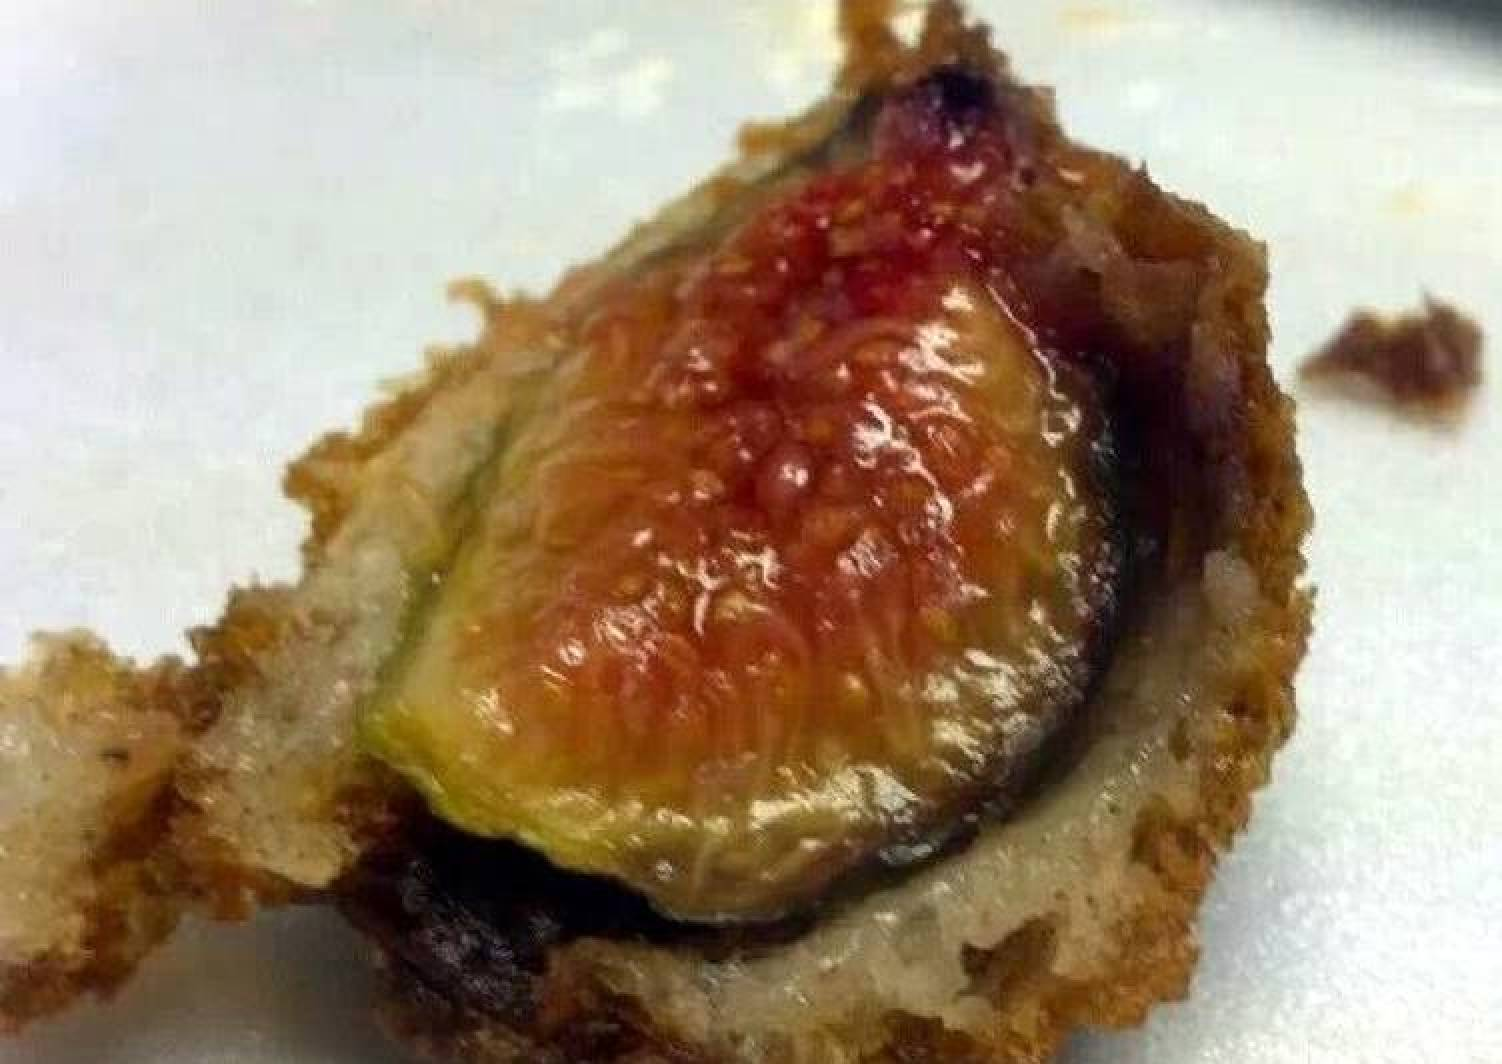 eggy's fried figs